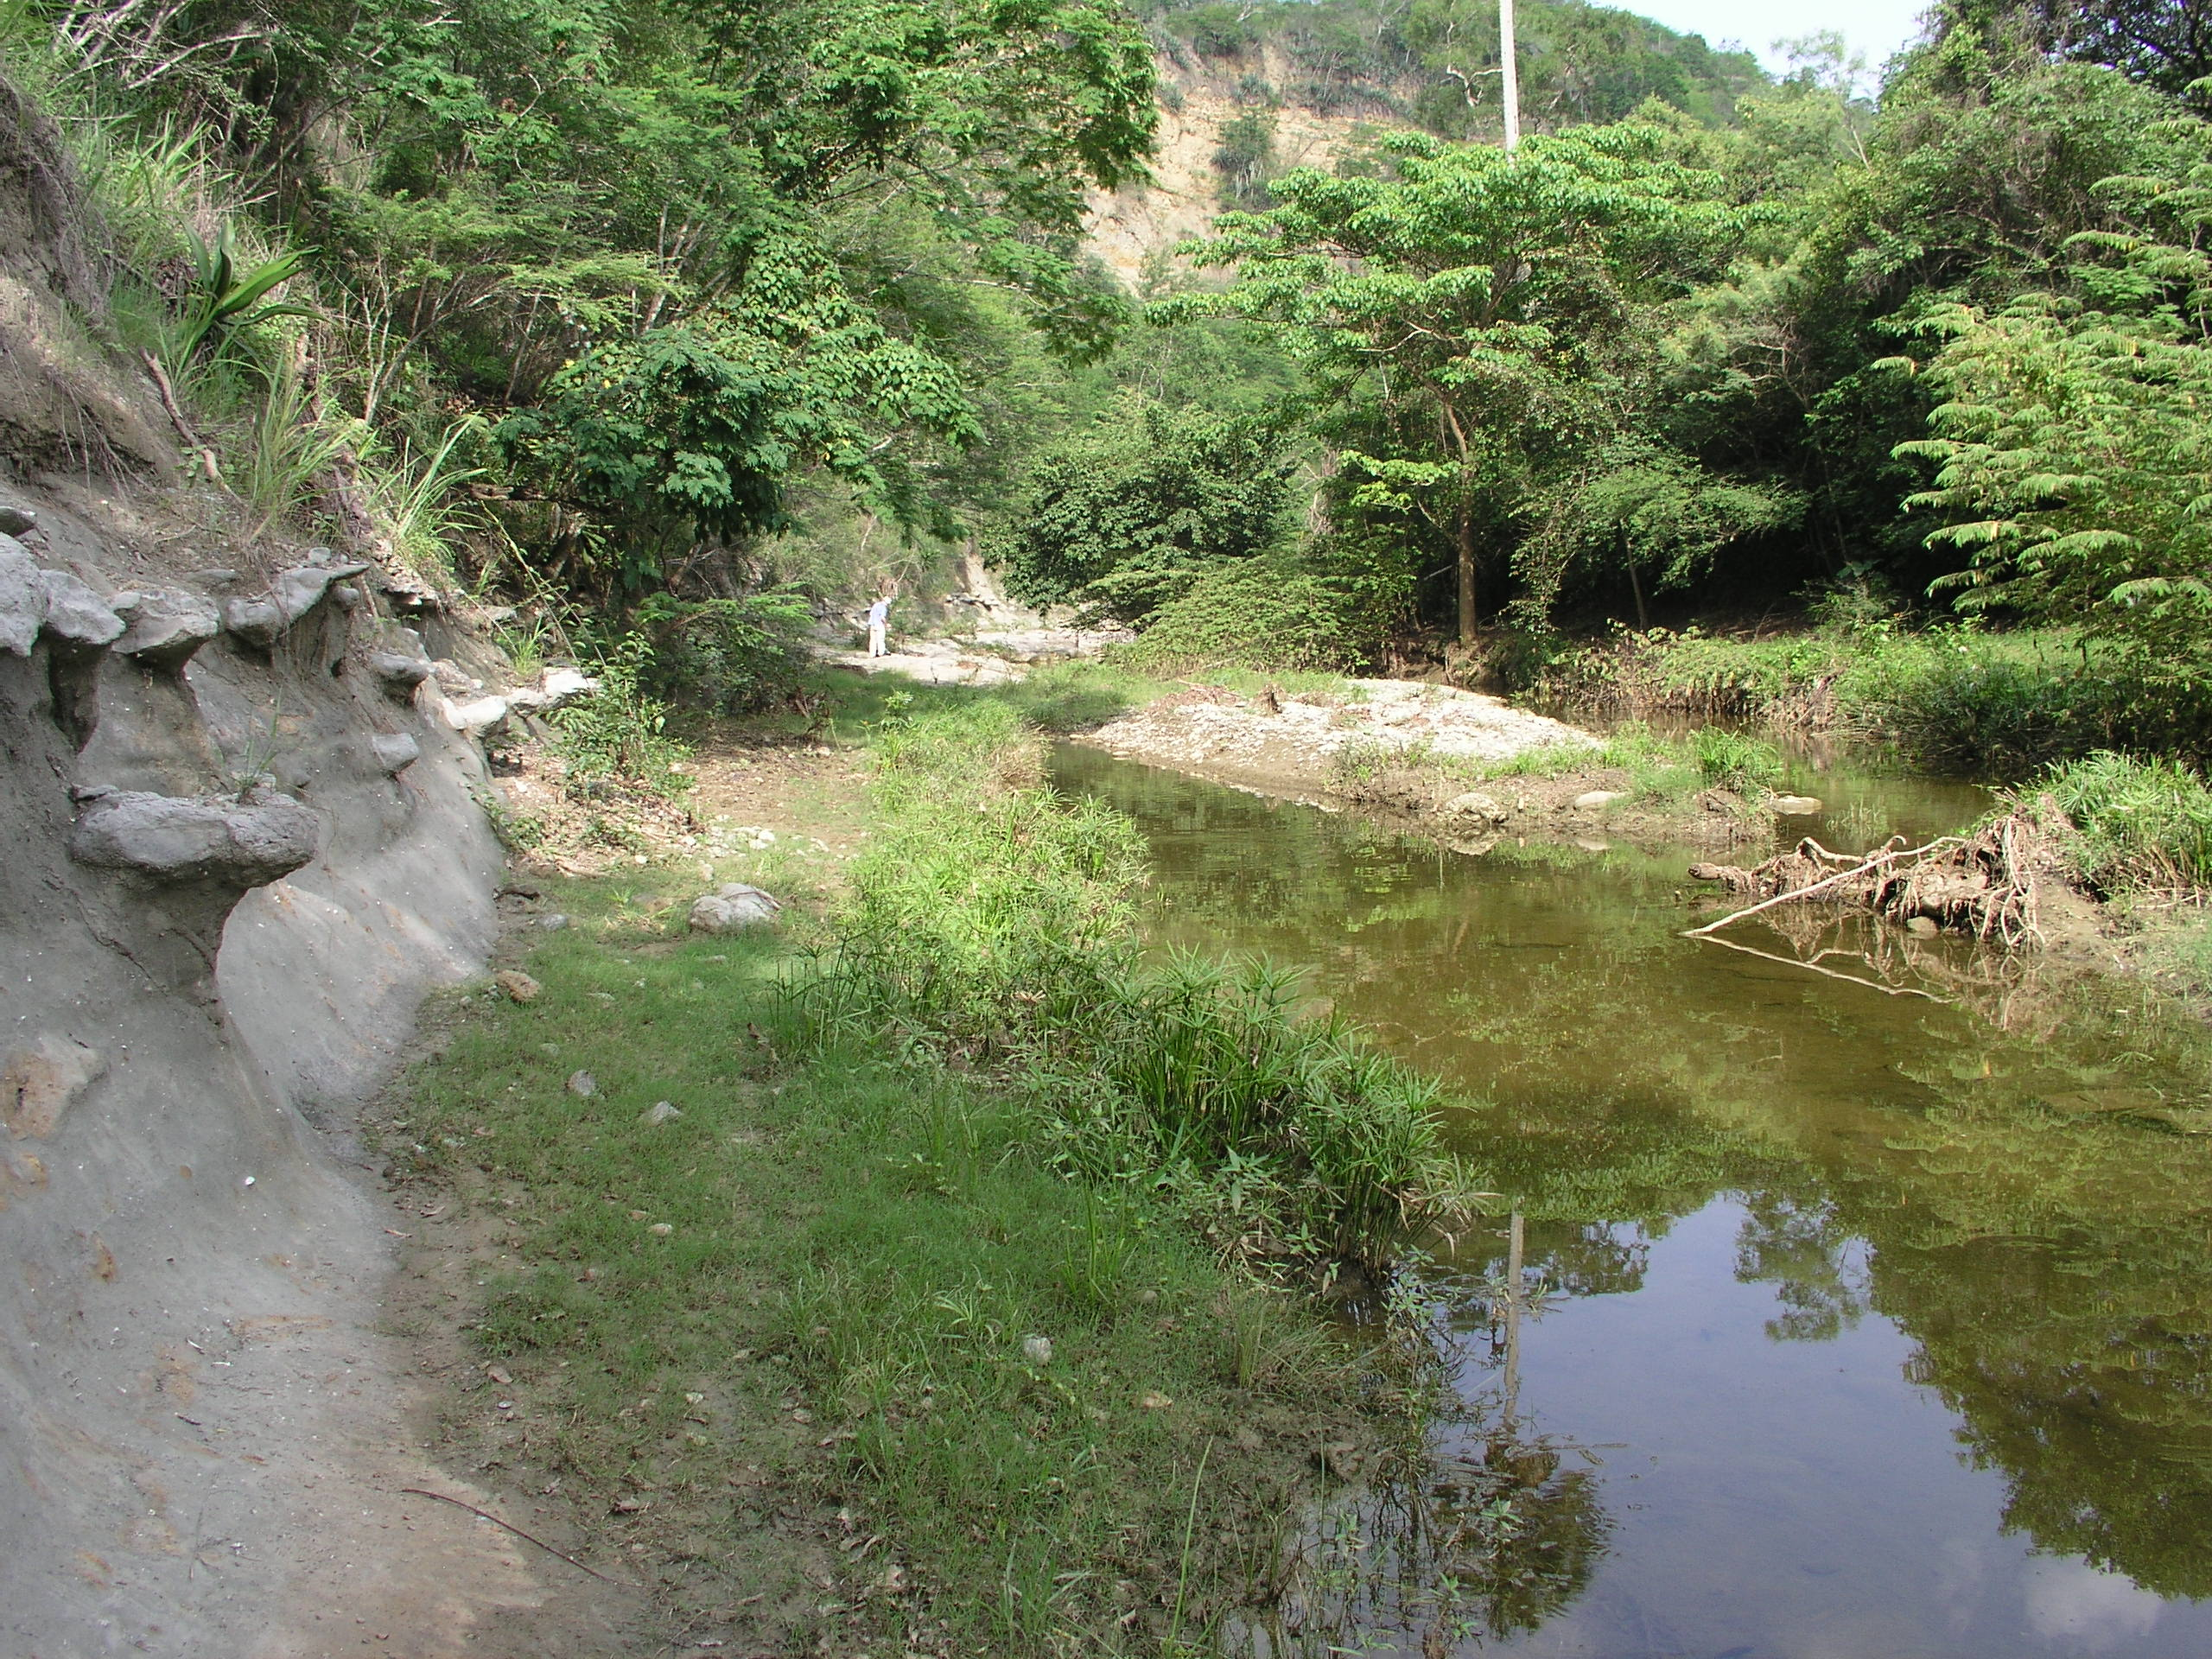 Sediments along this stream in the Dominican Republic contain fossil corals.